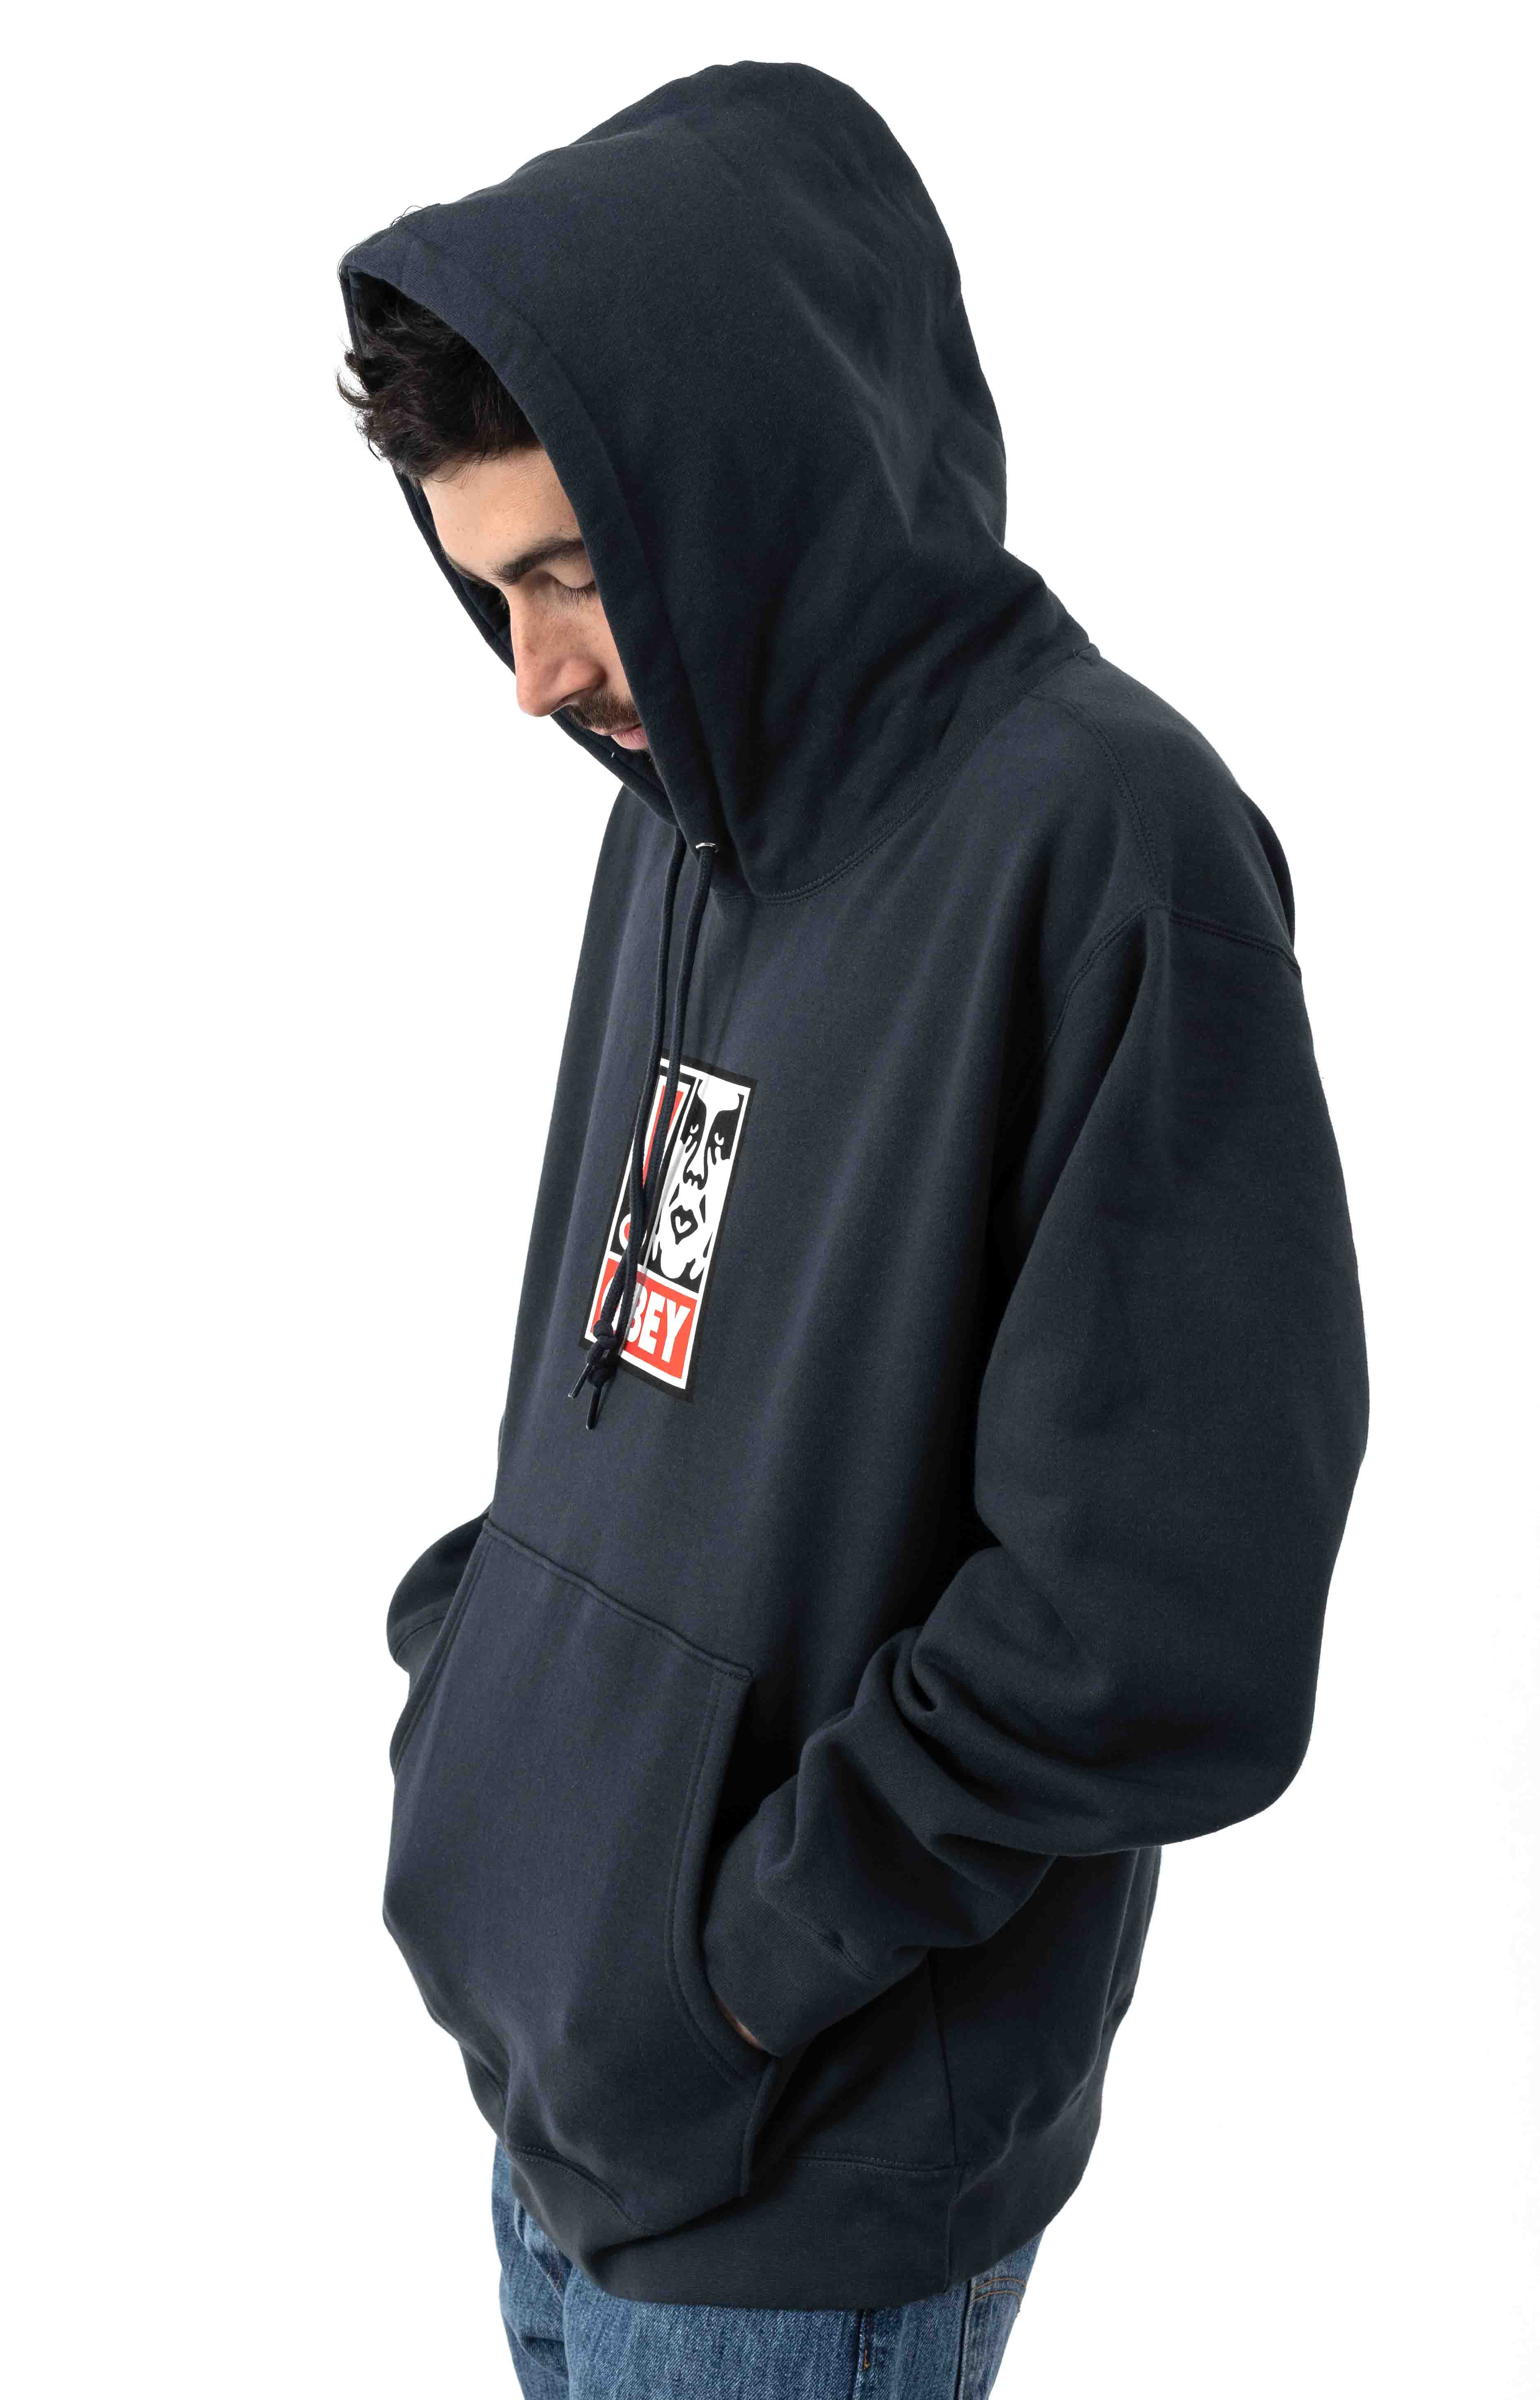 Exclamation Point Pullover Hoodie - Slate Blue 2